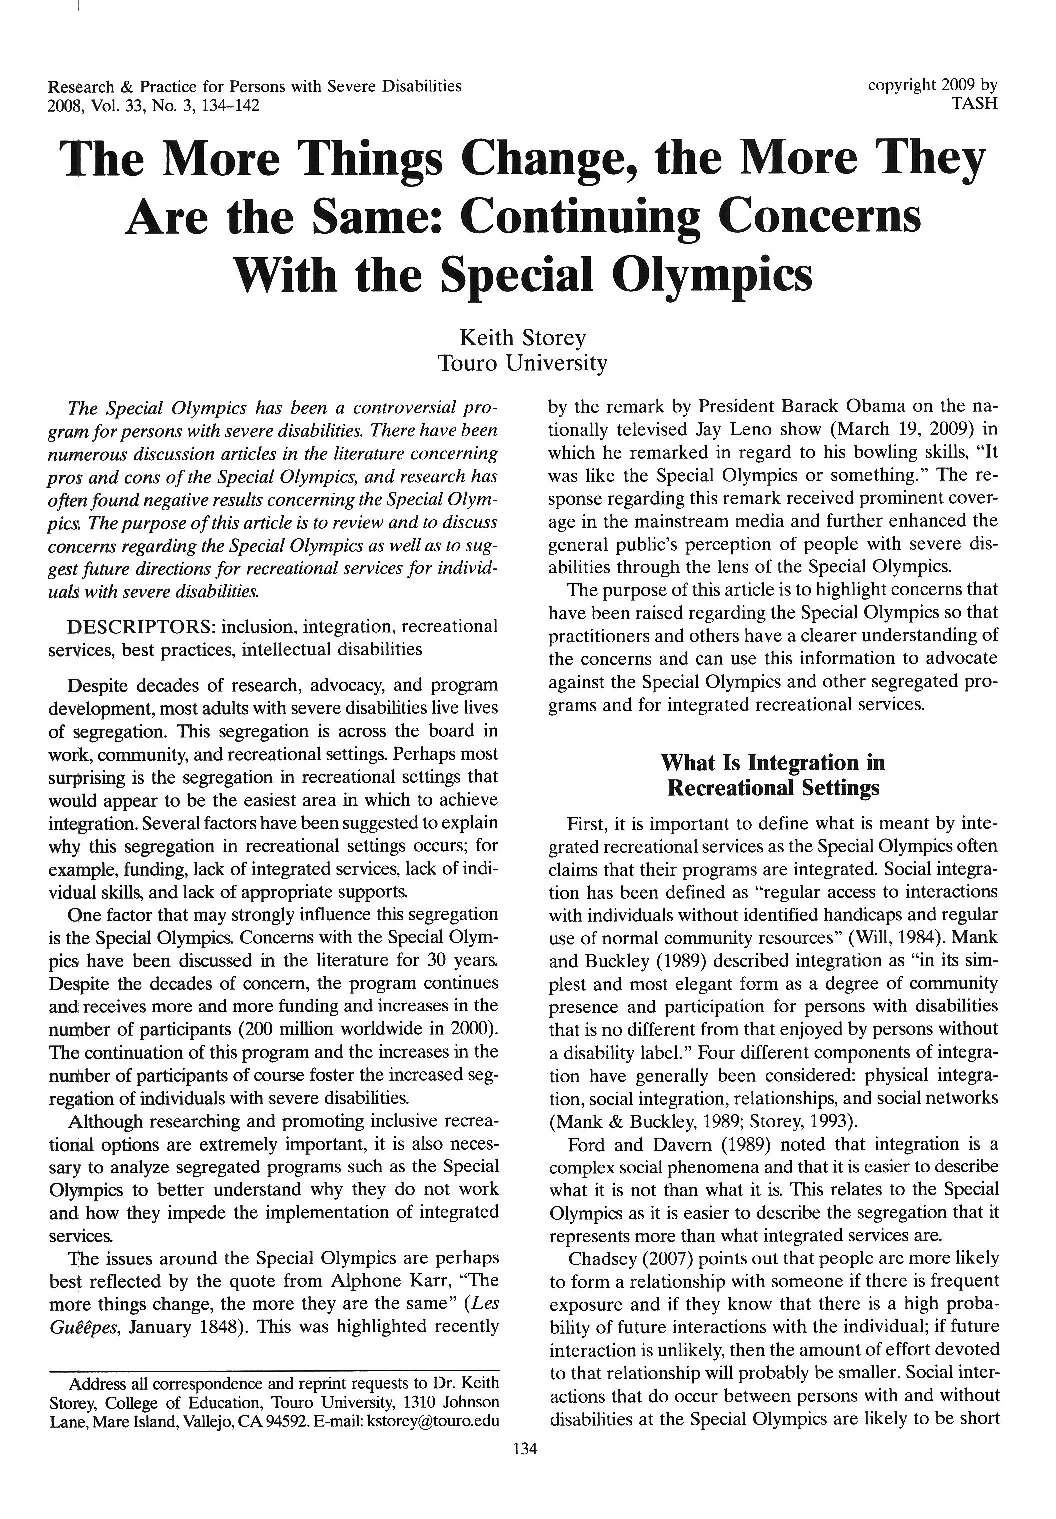 Research & Practice for Persons with Severe Disabilities 2008, Vol. 33, No.